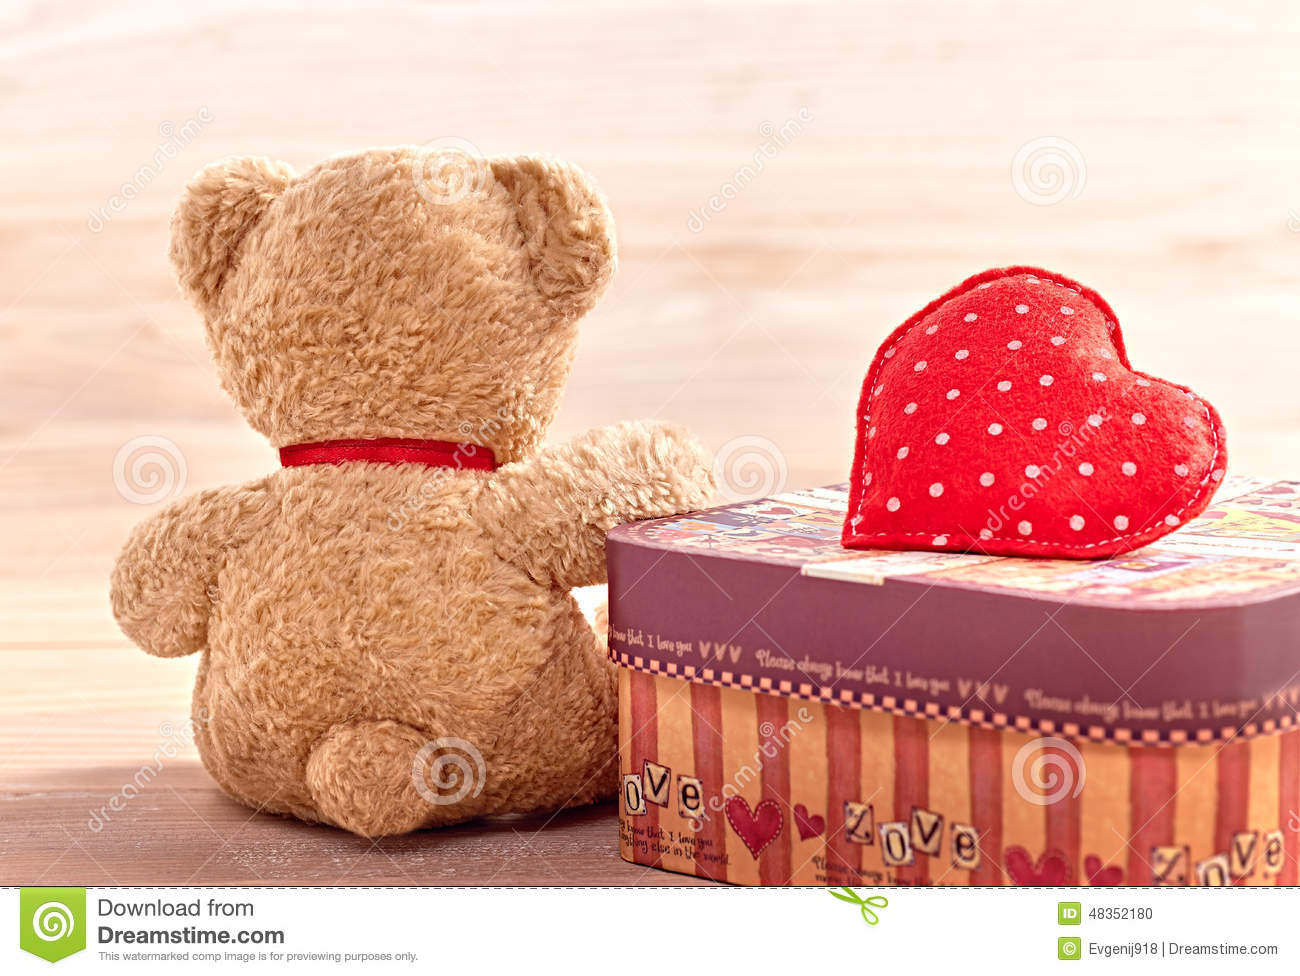 rote rose teddy bear loving mit herzen und geschenk retro stockfoto bild von feiertag konzept. Black Bedroom Furniture Sets. Home Design Ideas